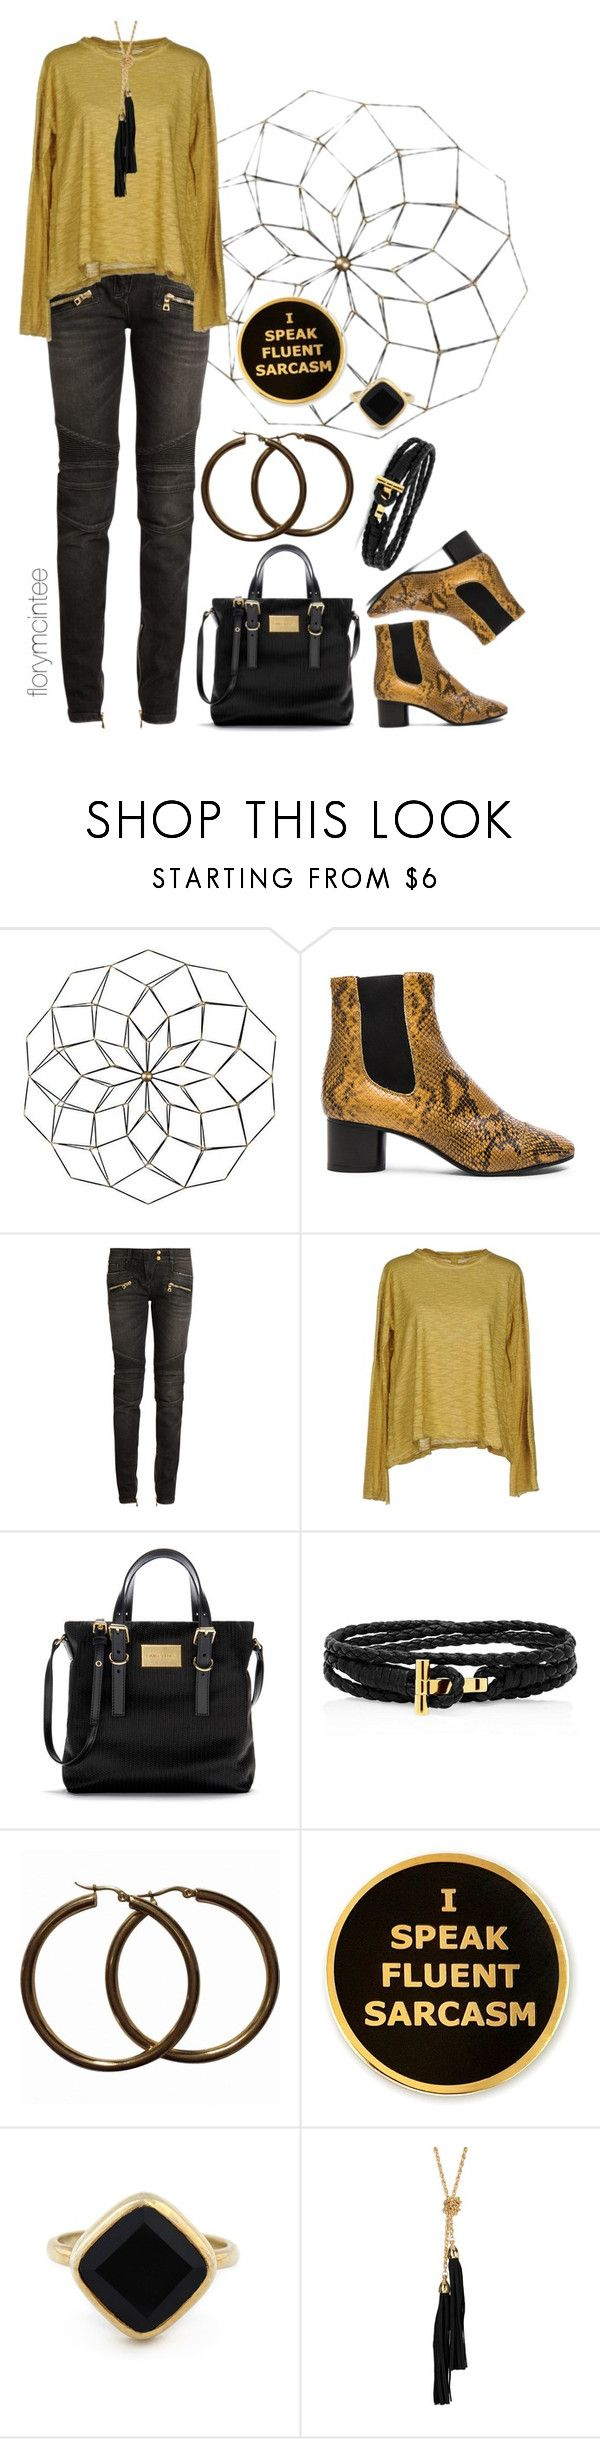 """I Speak Fluent Sarcasm"" by florymcintee ❤ liked on Polyvore featuring Isabel Marant, Balmain, Gilda Midani, Sole Society and Sterling Forever"